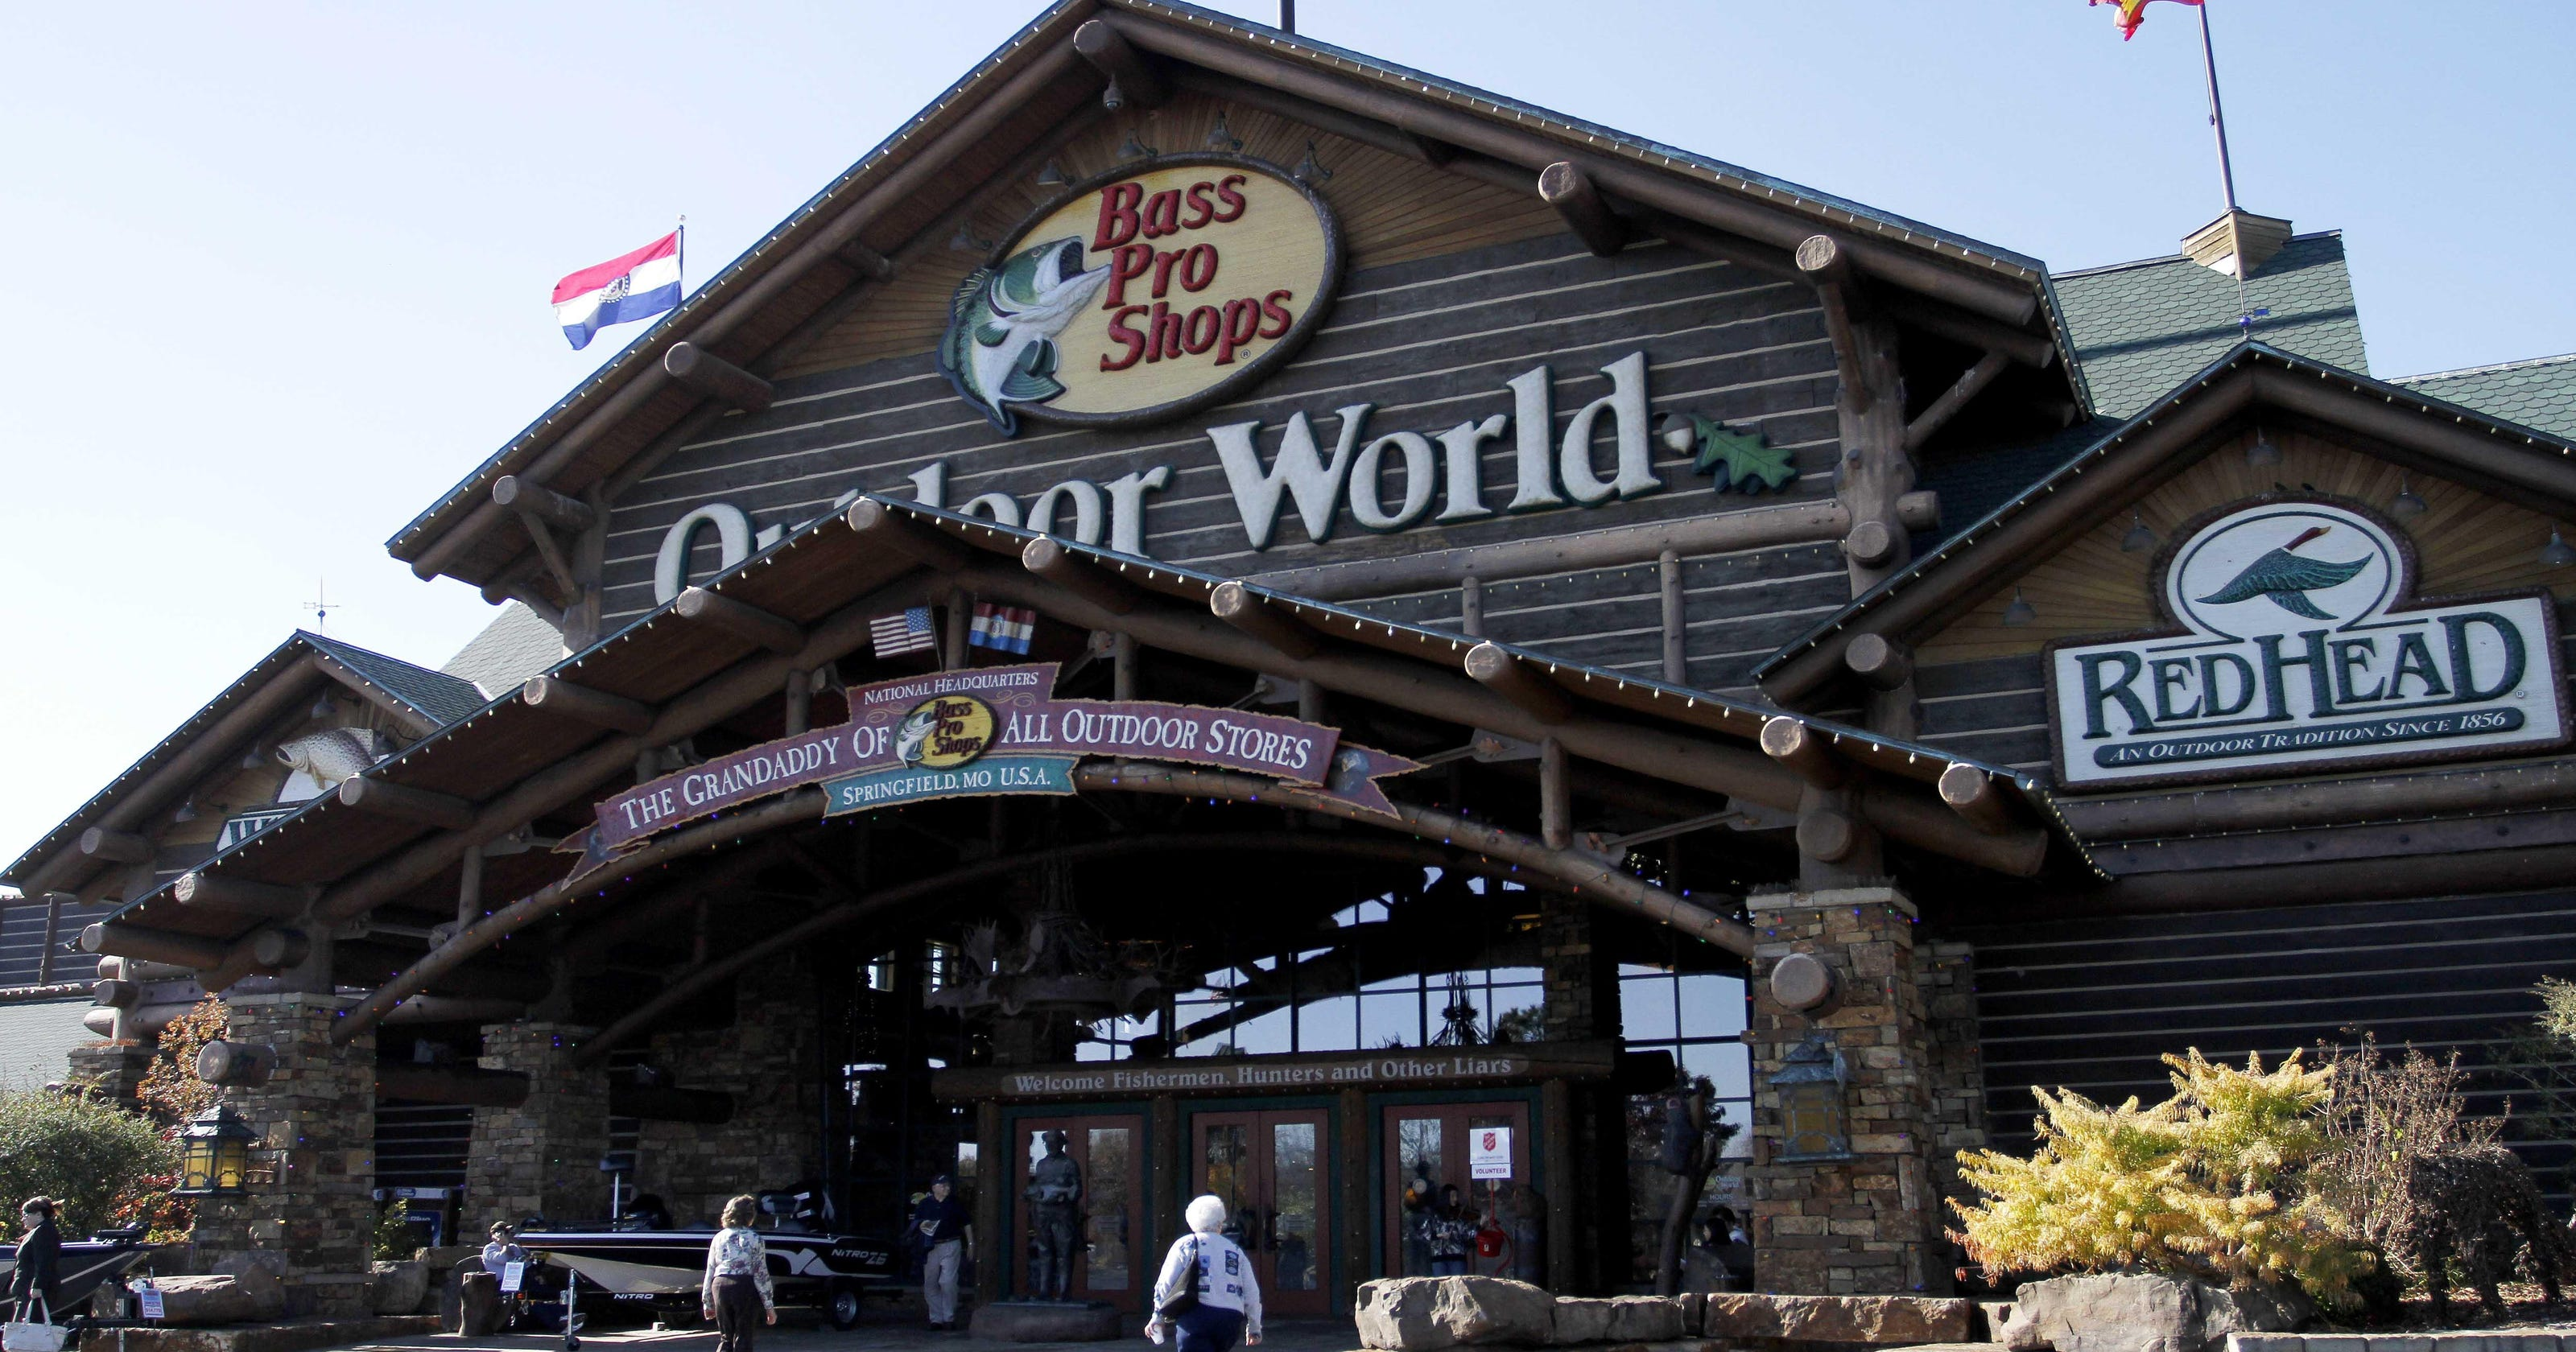 Bass Pro Shops coming to the Upstate